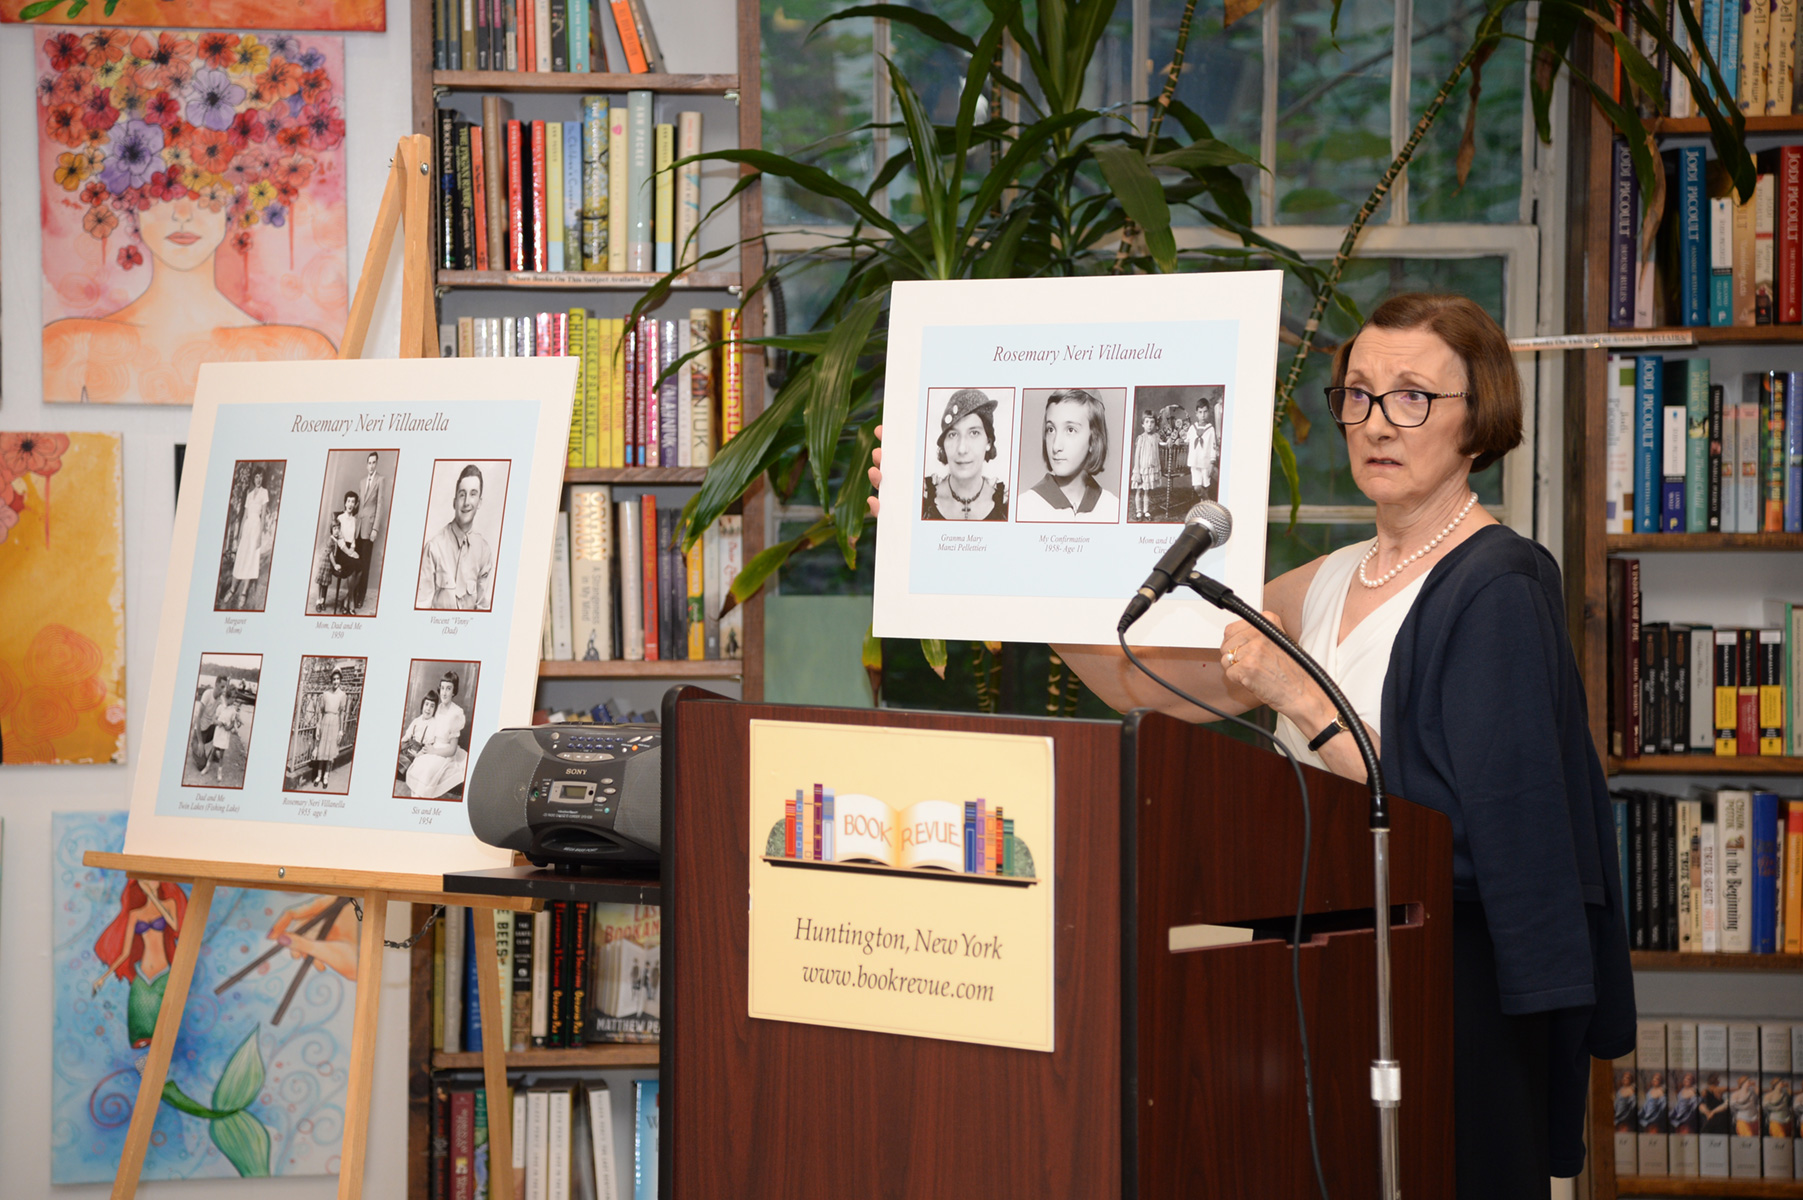 Rosemary Neri Villanella answers questions about her photo archive at  Book Revue , Huntington, NY, July 17th, 2017 (Photo by John Ellis Kordes)